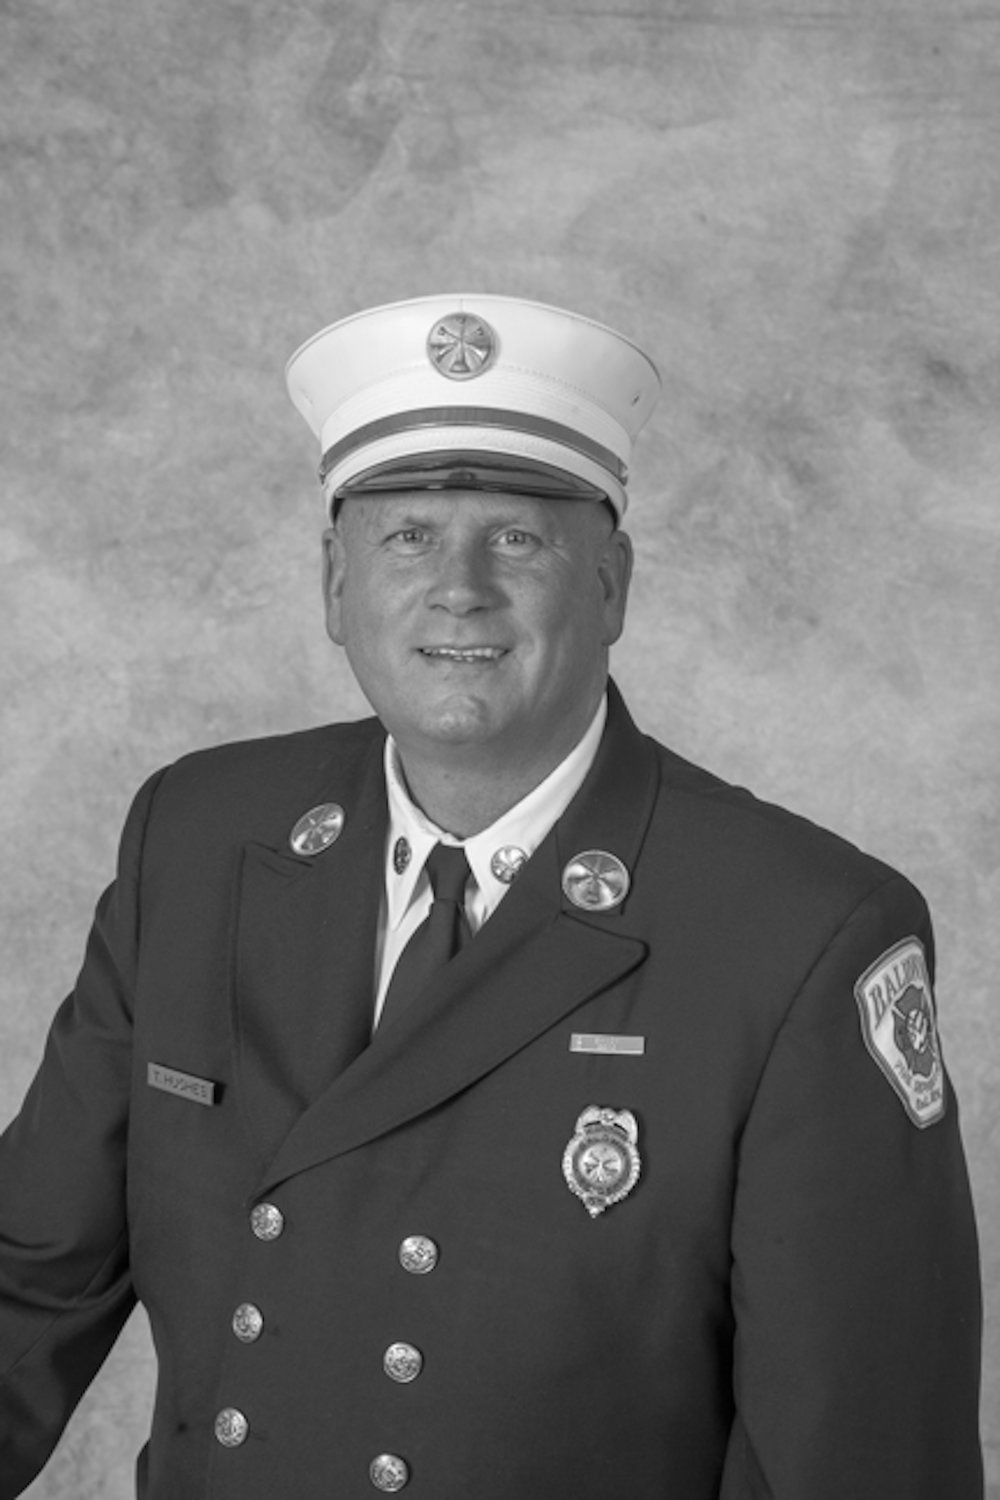 Second Deputy Chief Timothy Hughes